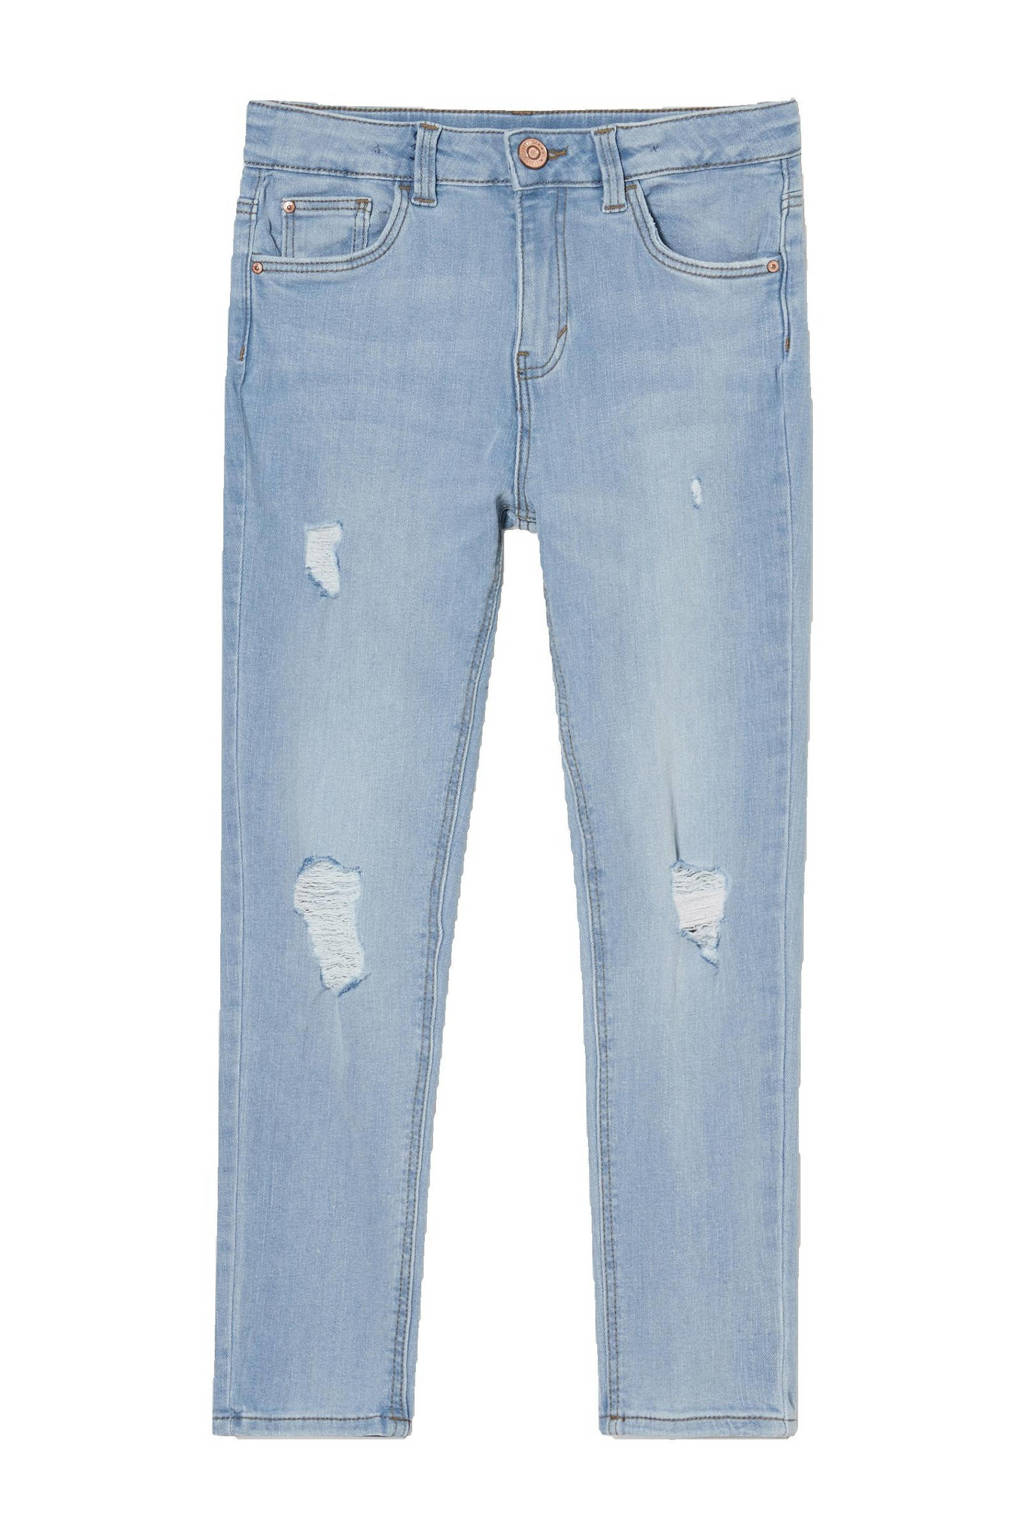 C&A Here & There slim fit jeans lichtblauw, Lichtblauw